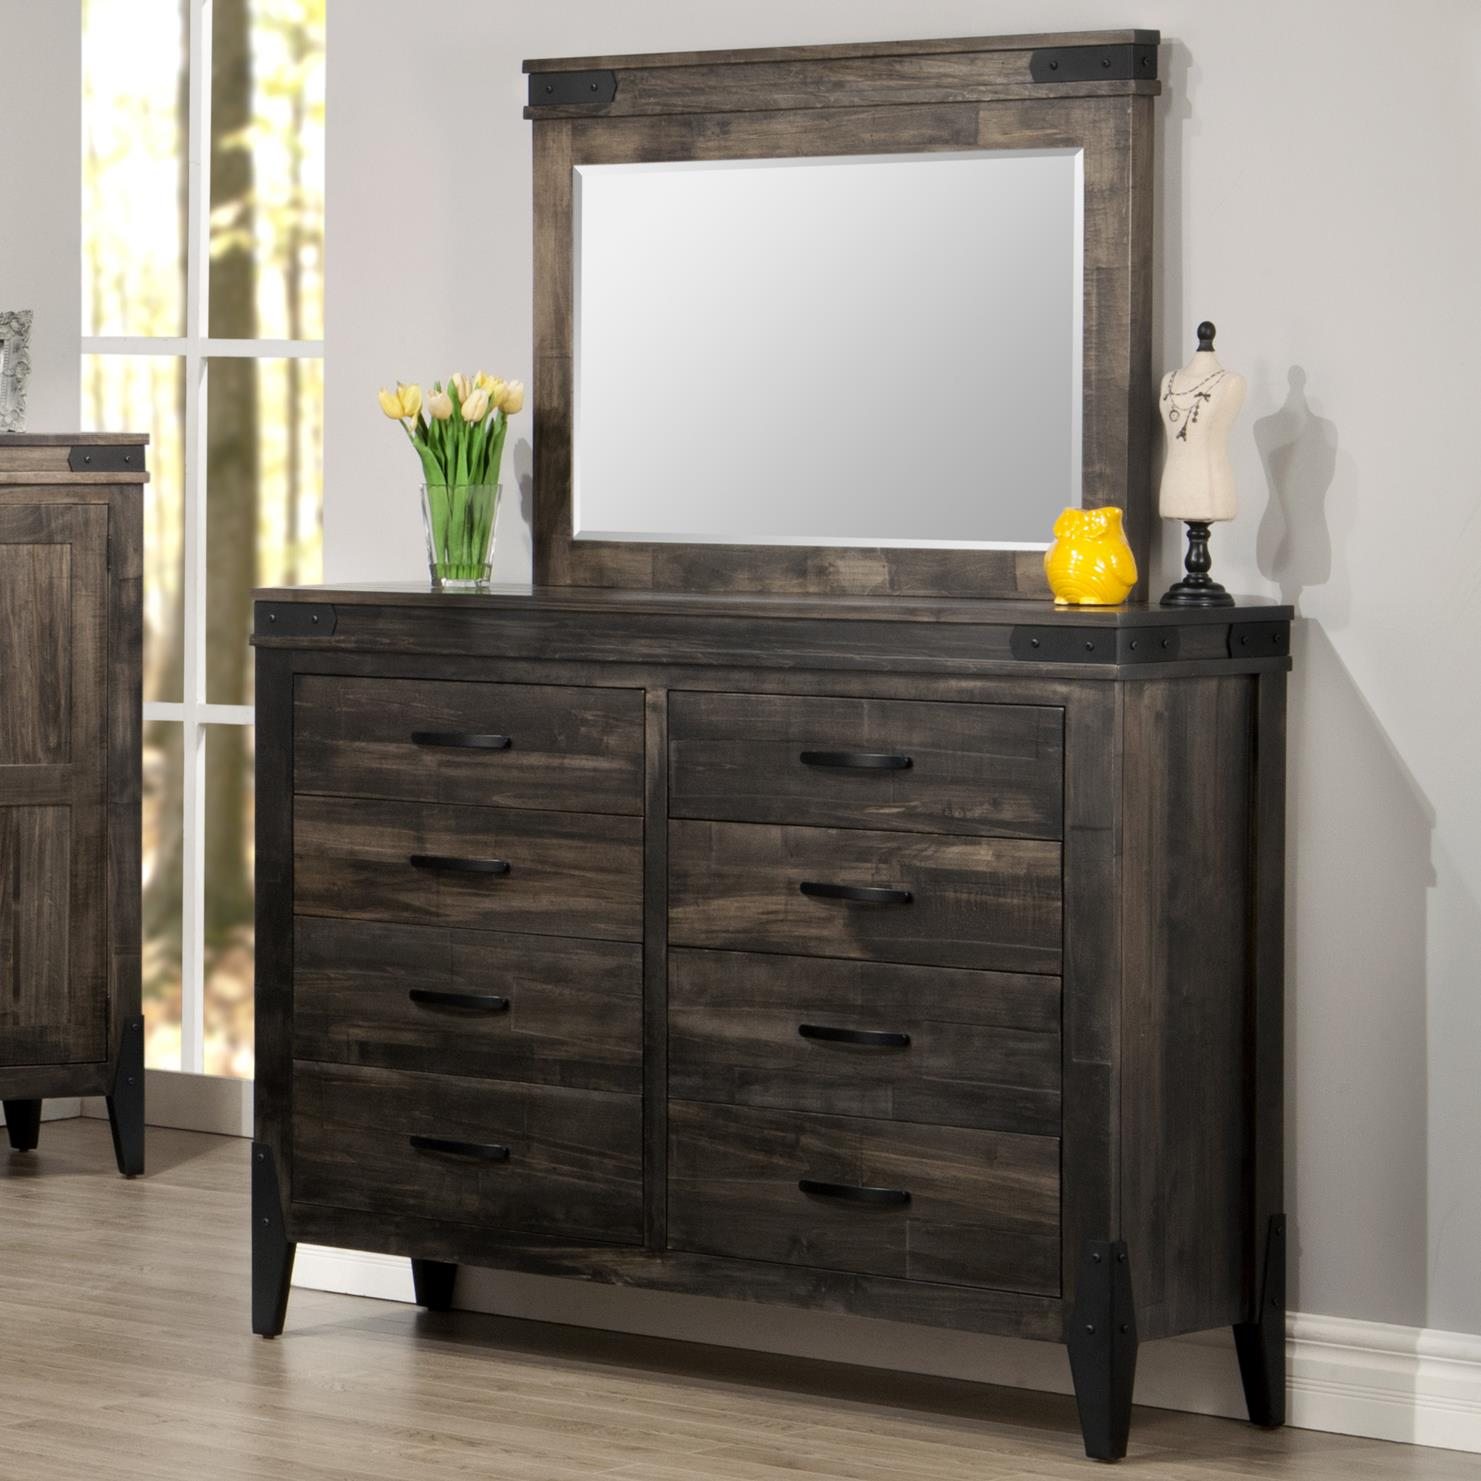 Chattanooga Dresser and Mirror Set by Handstone at Stoney Creek Furniture